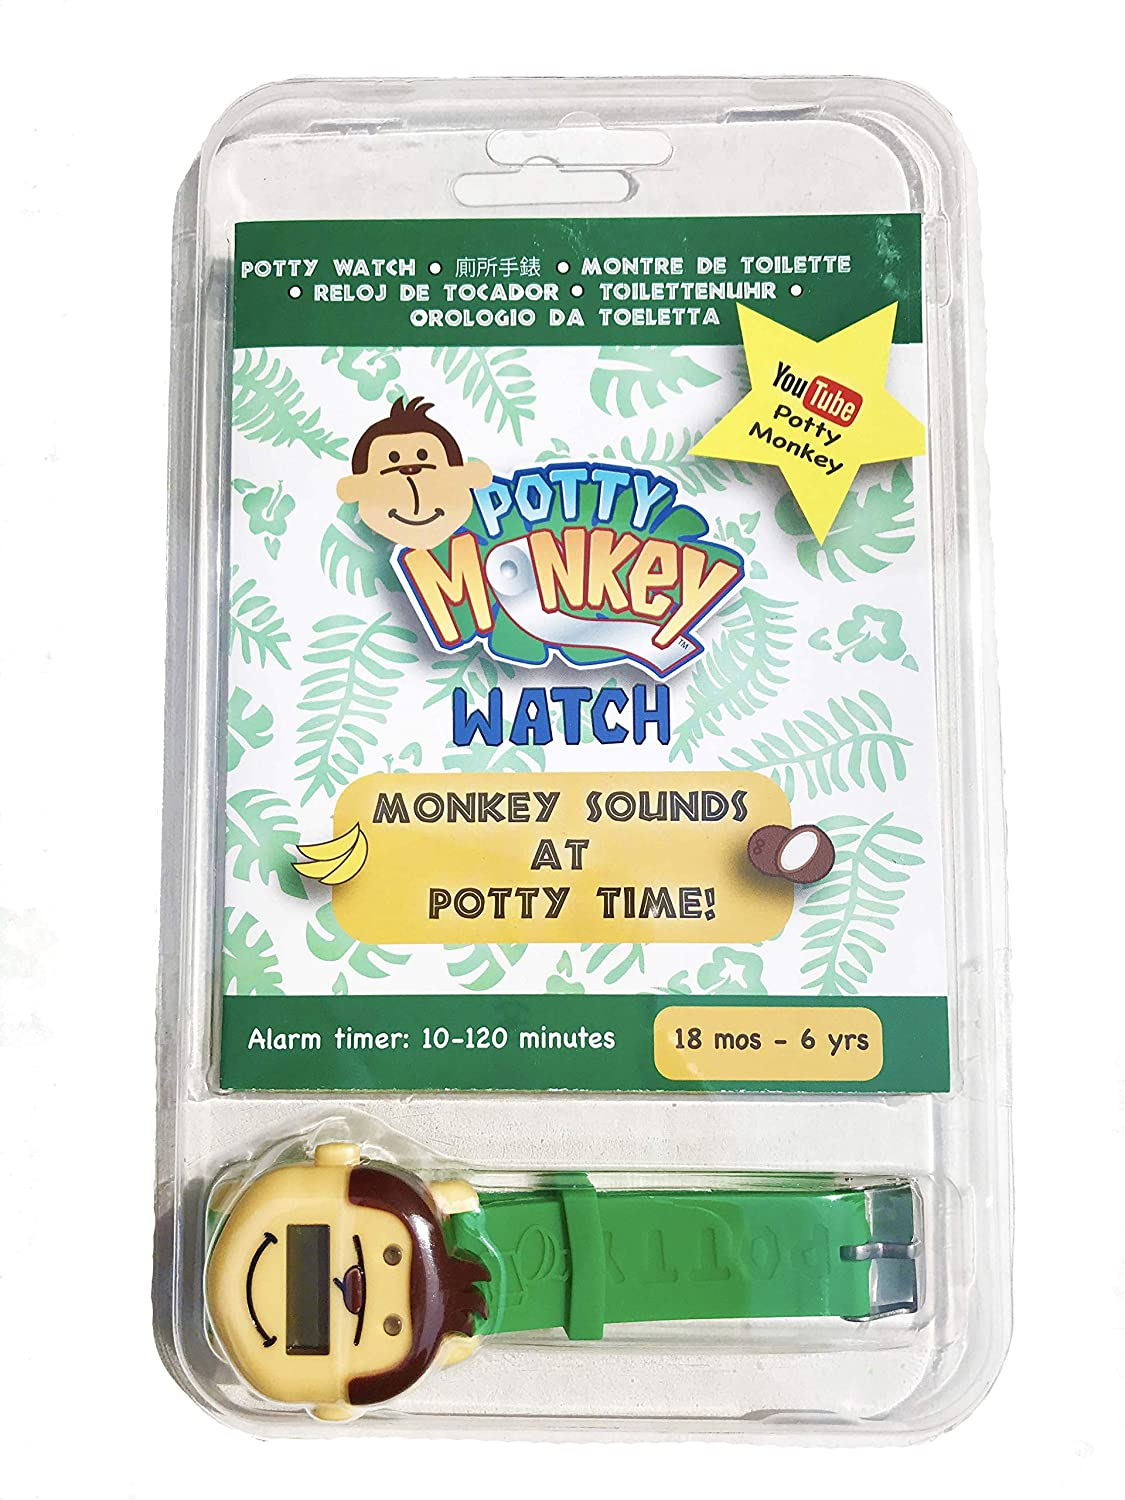 Amazon.com : Potty Monkey Watch | Potty Training Reminder Watch with Colorful Fun Reward Chart and Stickers : Baby